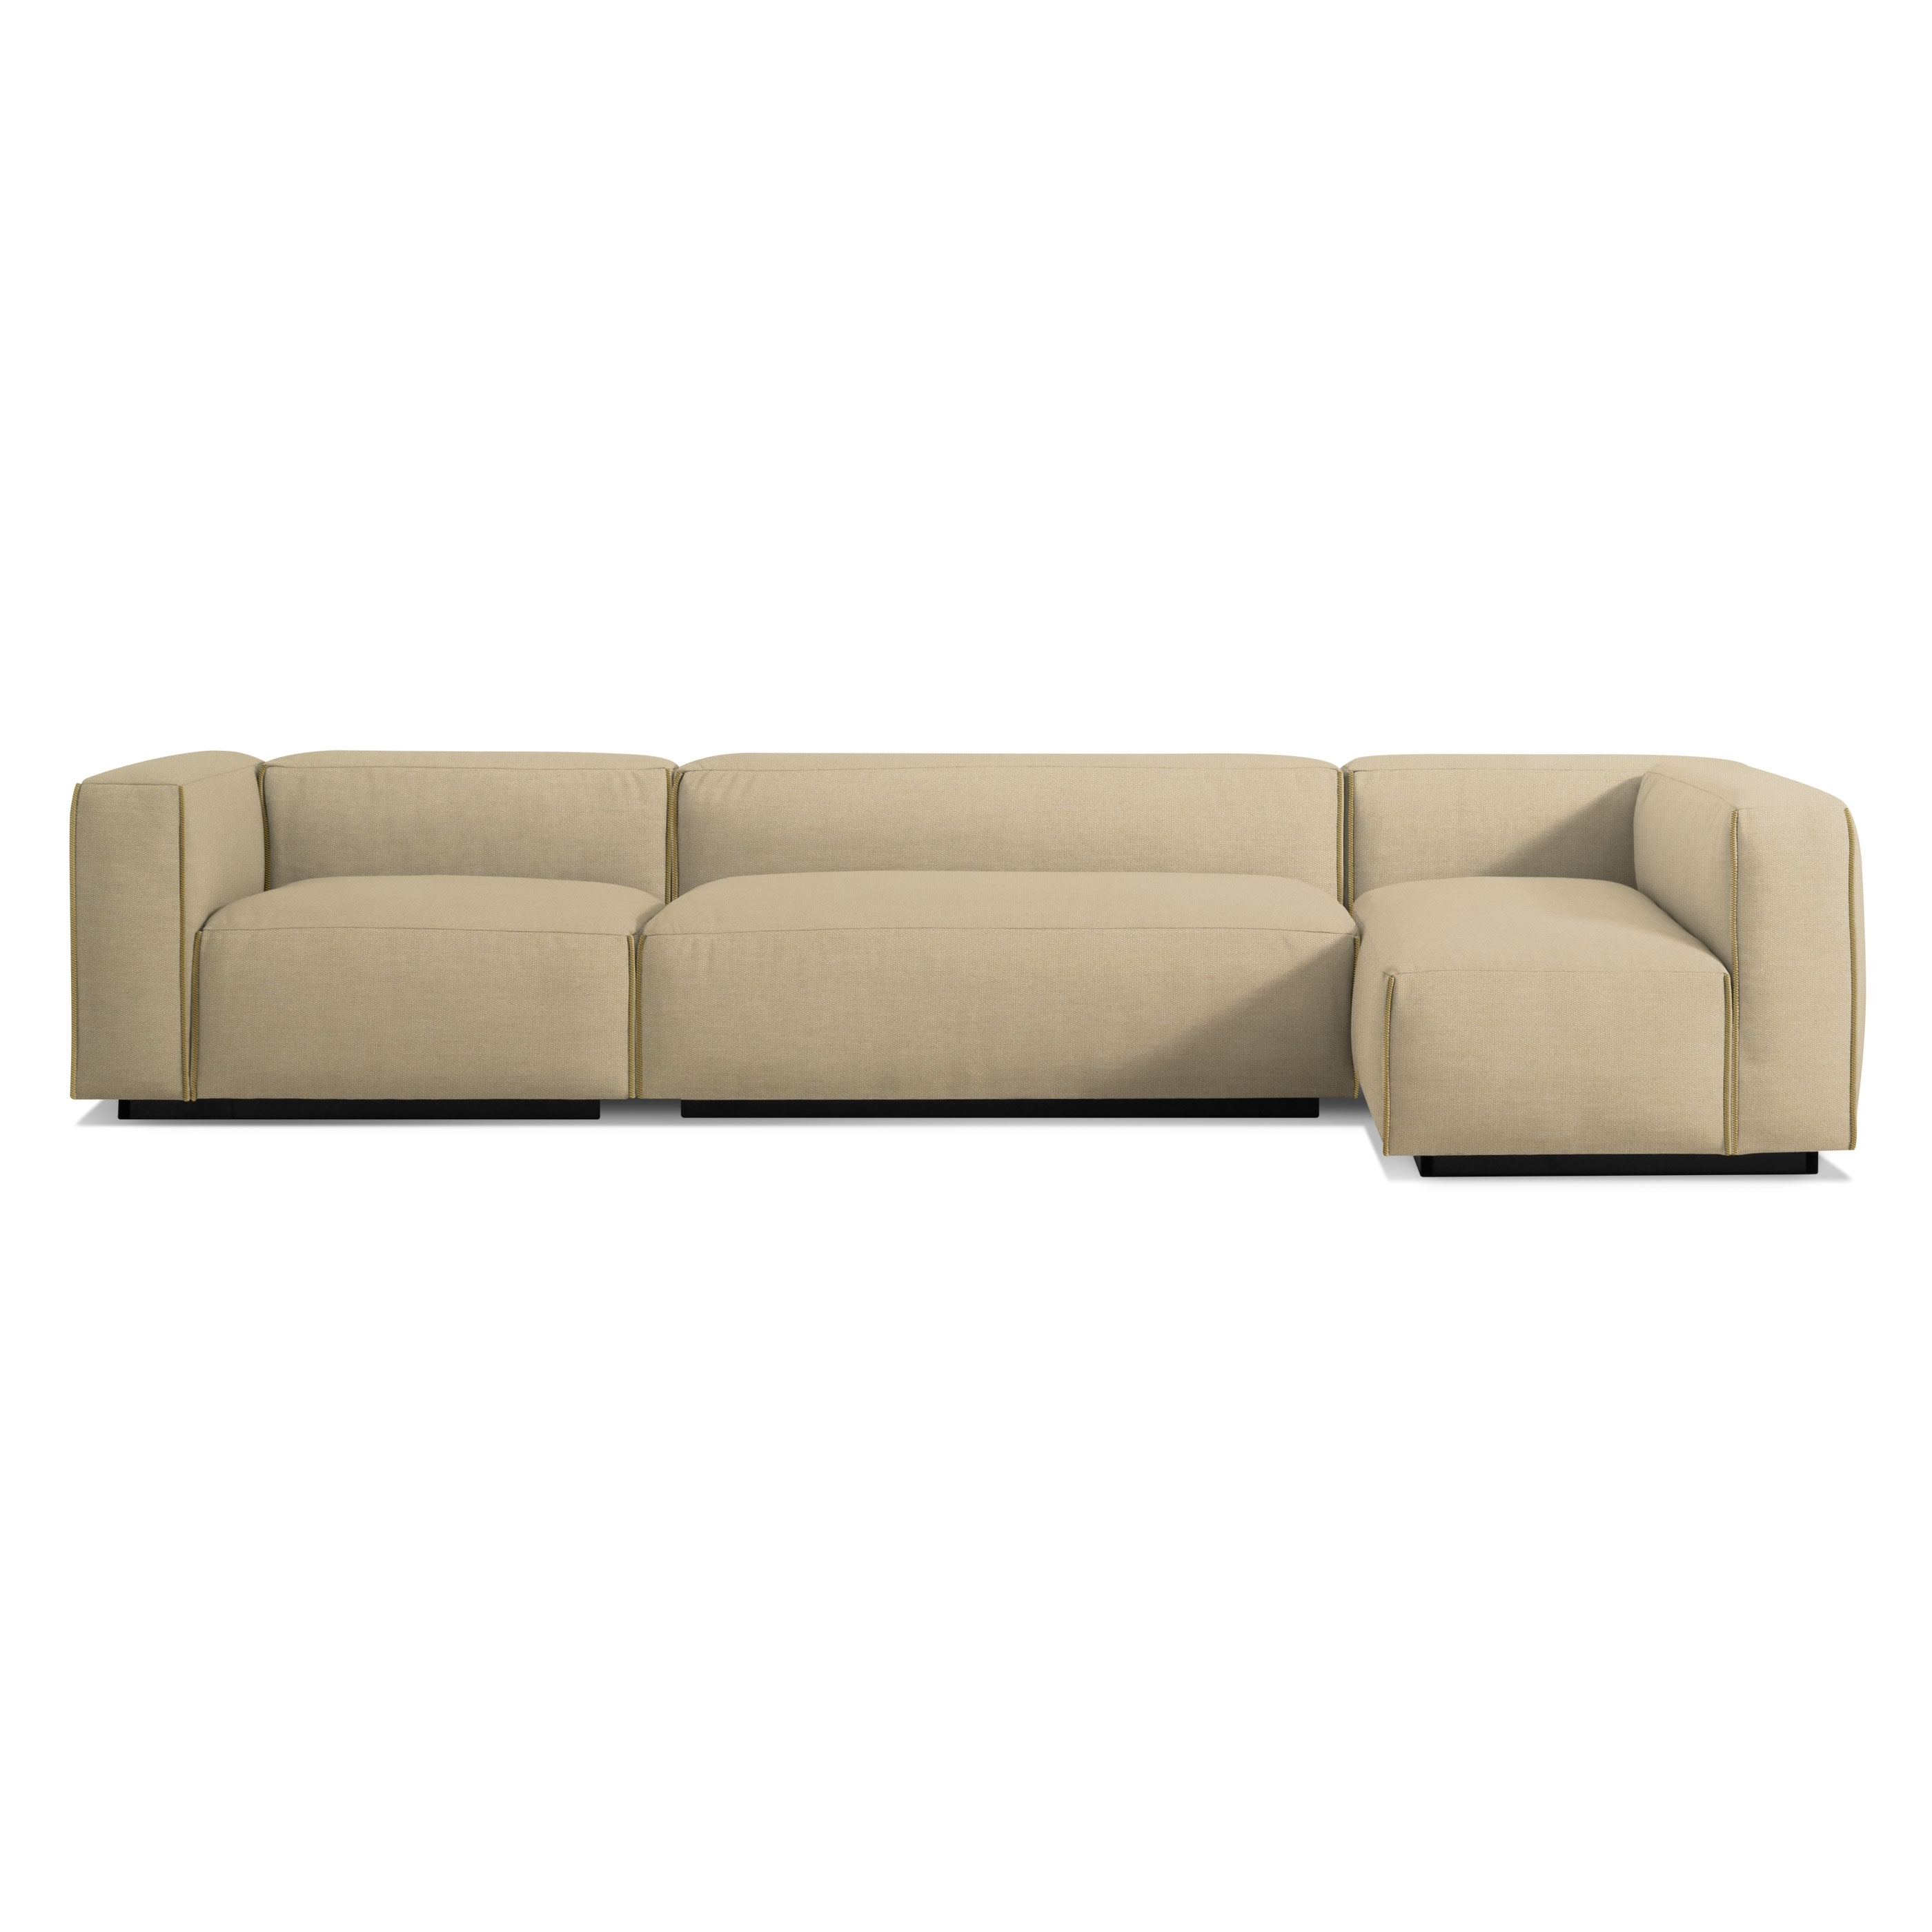 Cleon Medium+ Sectional Sofa – Modern Sofas And Sectionals – Bludot In Newfoundland Sectional Sofas (View 7 of 10)